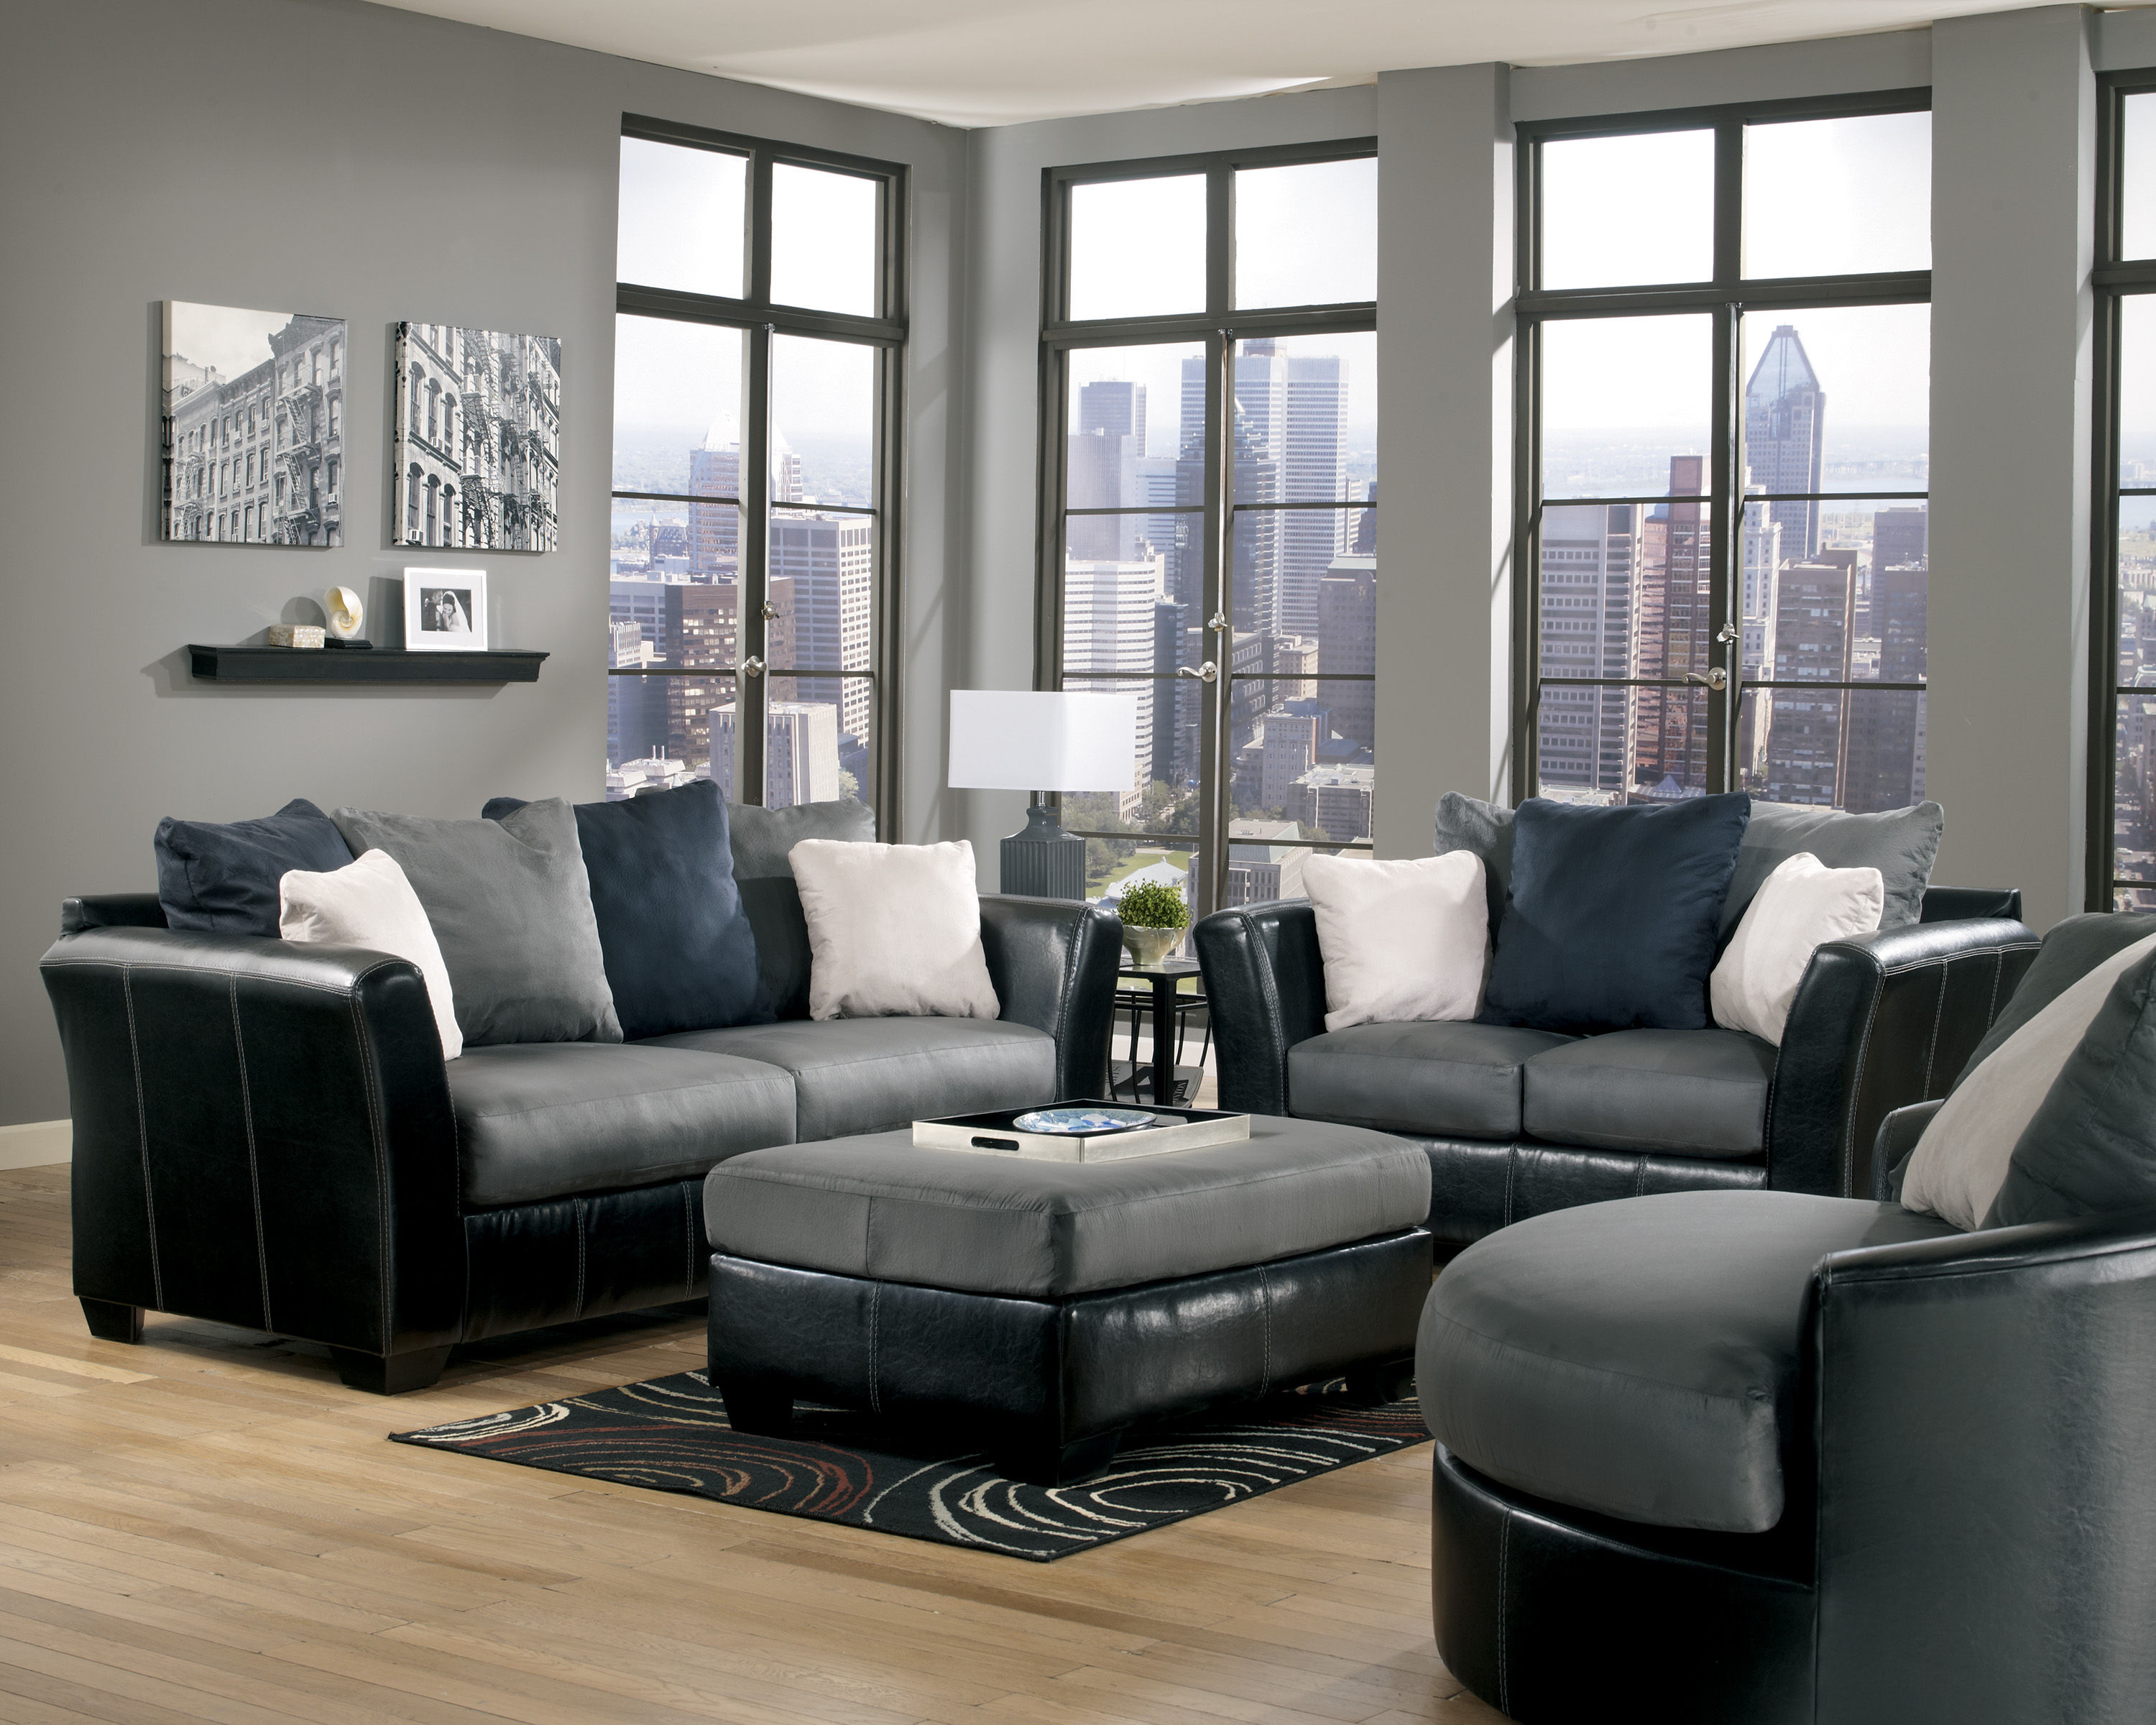 Cobblestone mocha faux leather fabric living room set for Leather and fabric living room sets